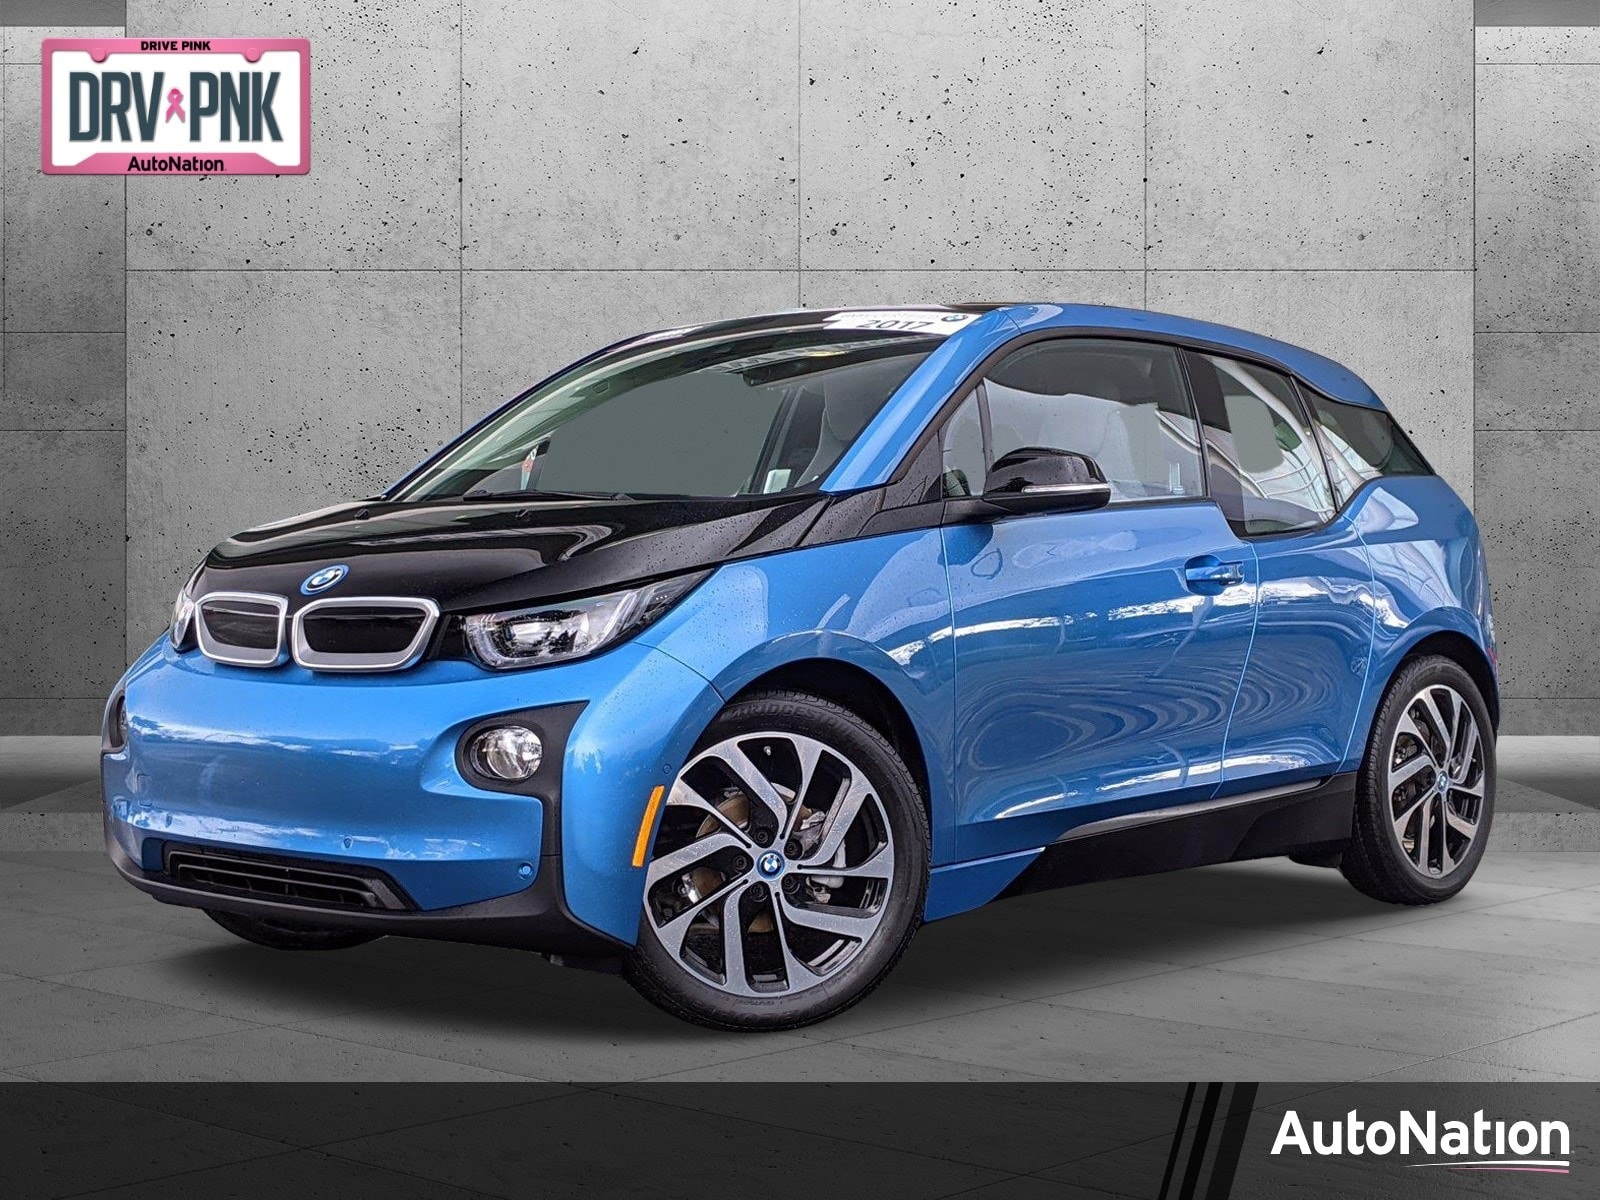 Bmw Cpo Inventory For Sale In Mountain View Ca Bmw Of Mountain View